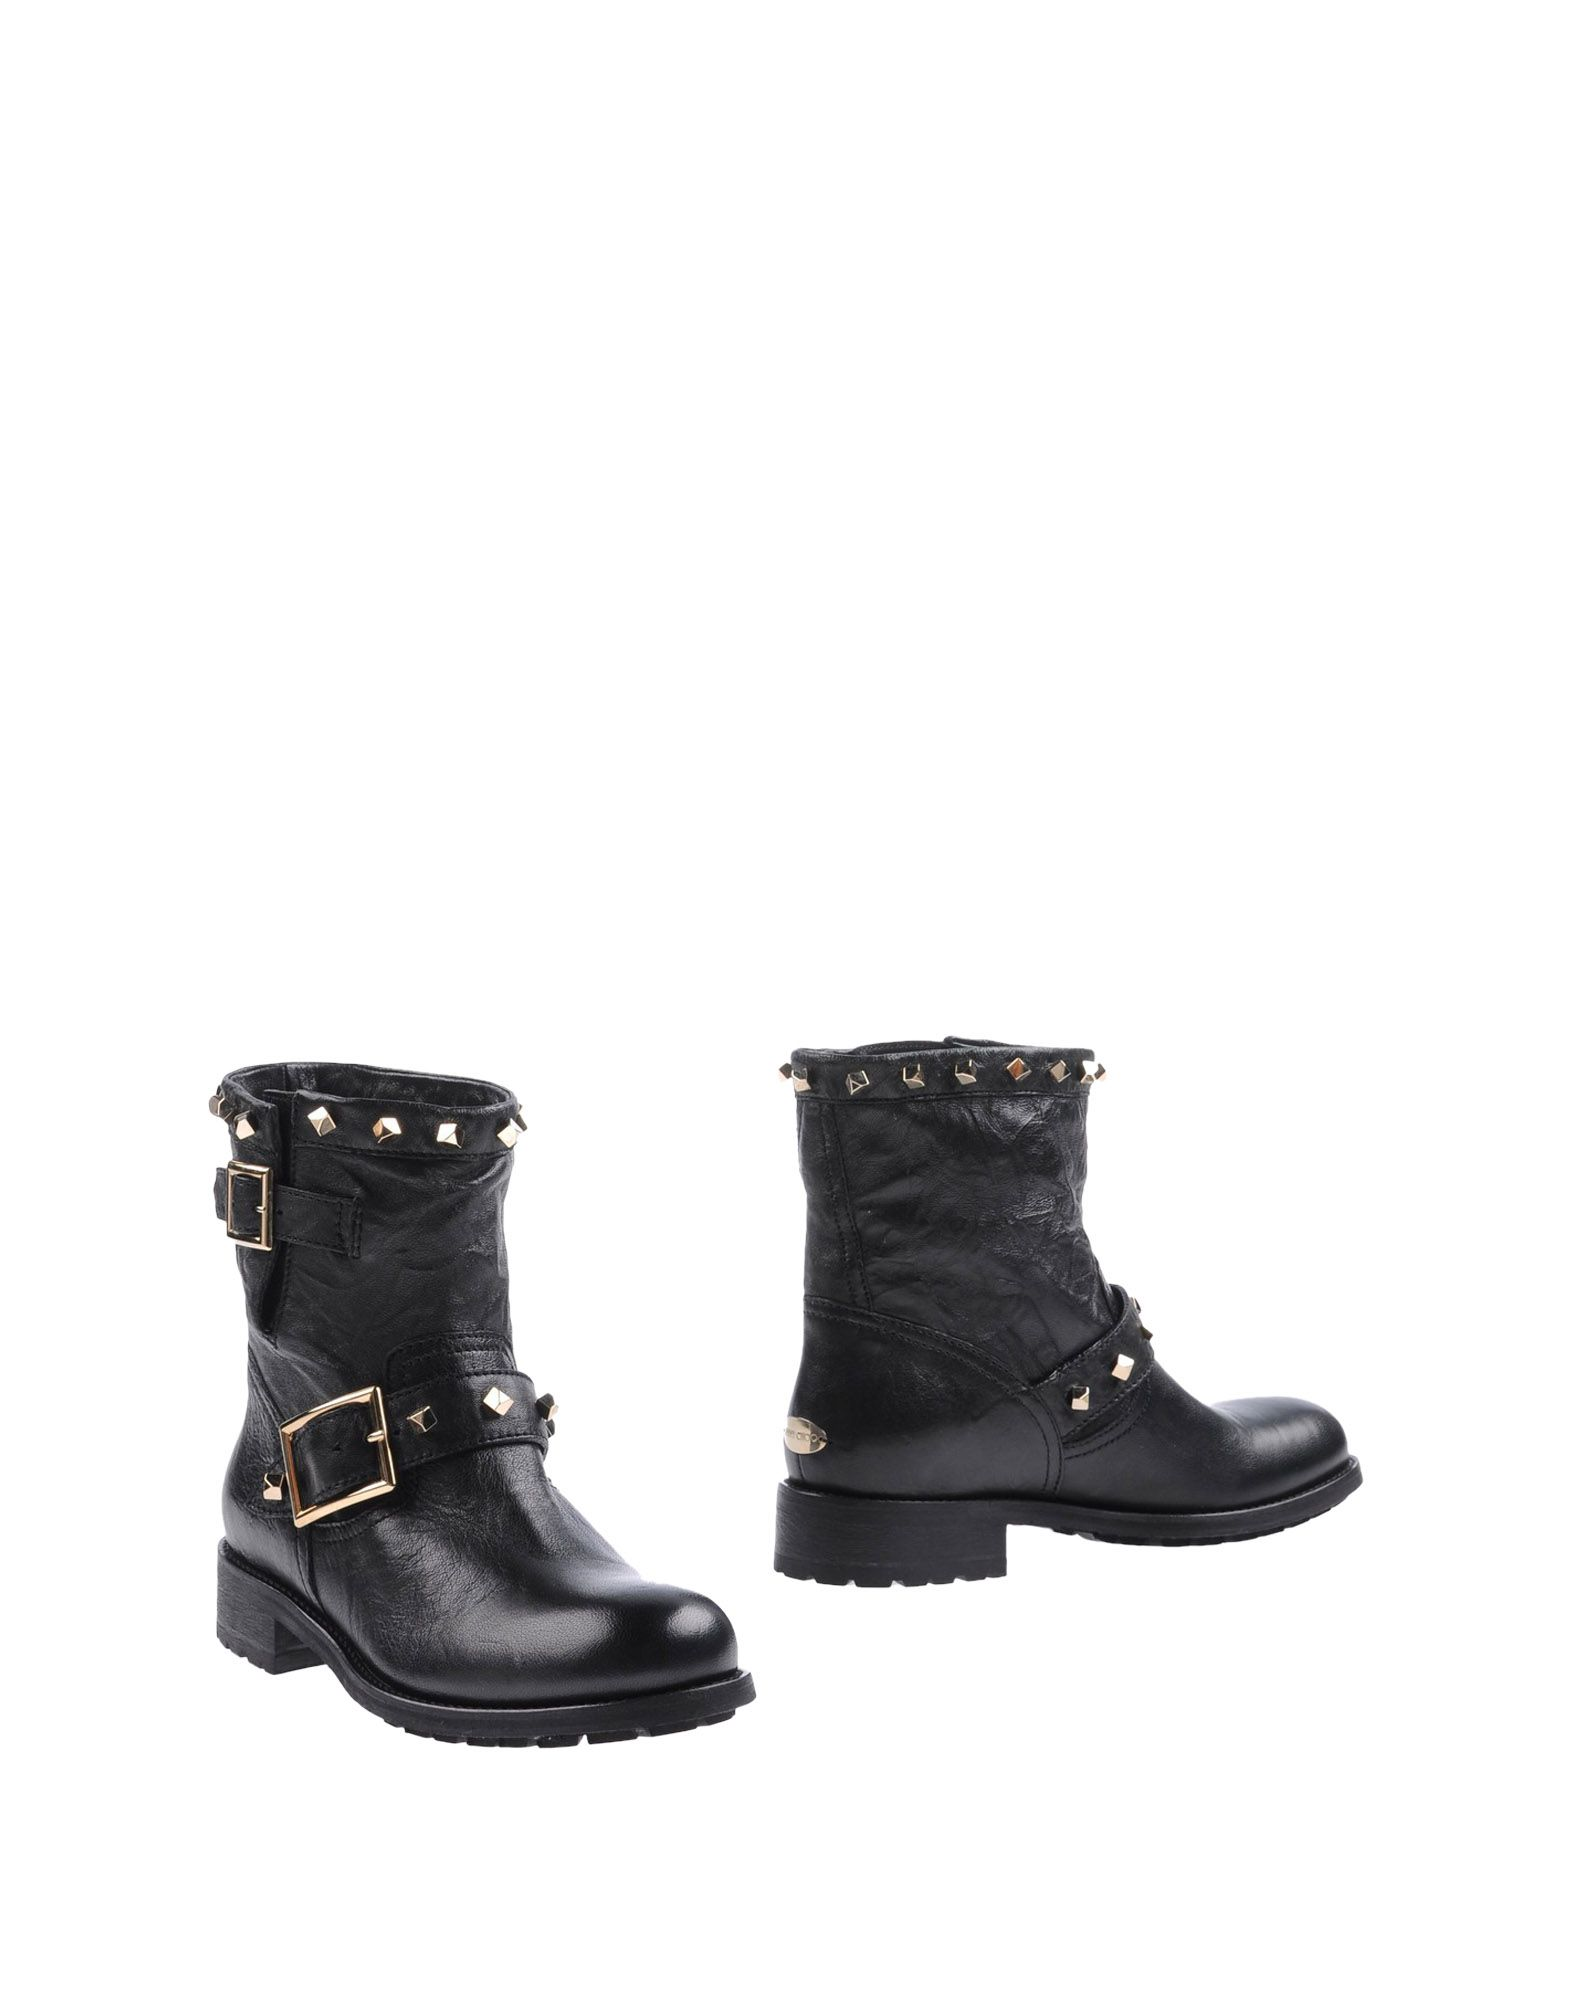 Jimmy Choo Ankle Choo Boot - Women Jimmy Choo Ankle Ankle Boots online on  Australia - 11148151MT 2c354d